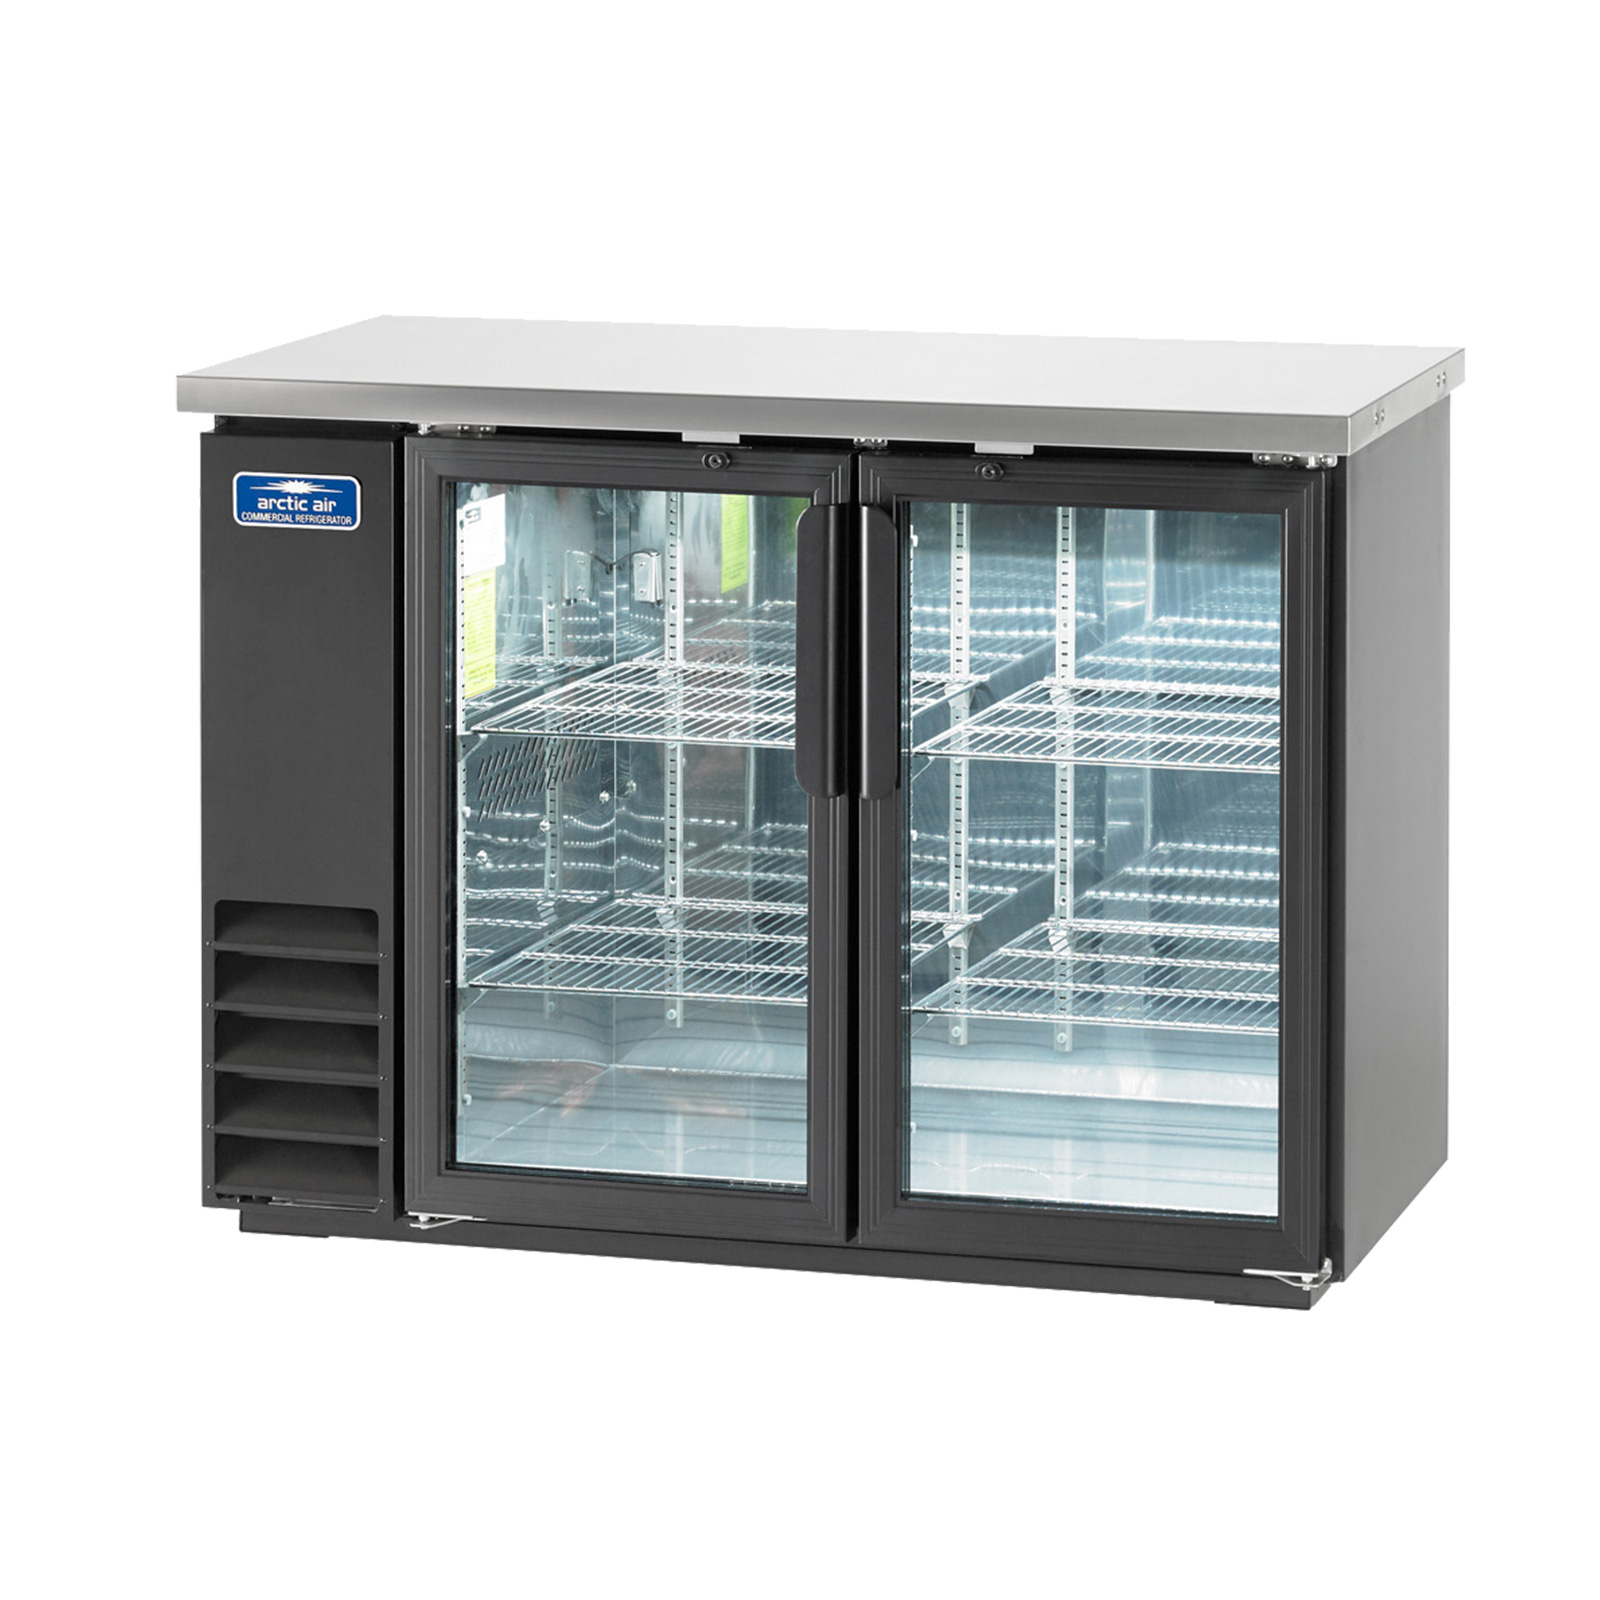 ABB48G Arctic Air Back bar cabinet, refrigerated